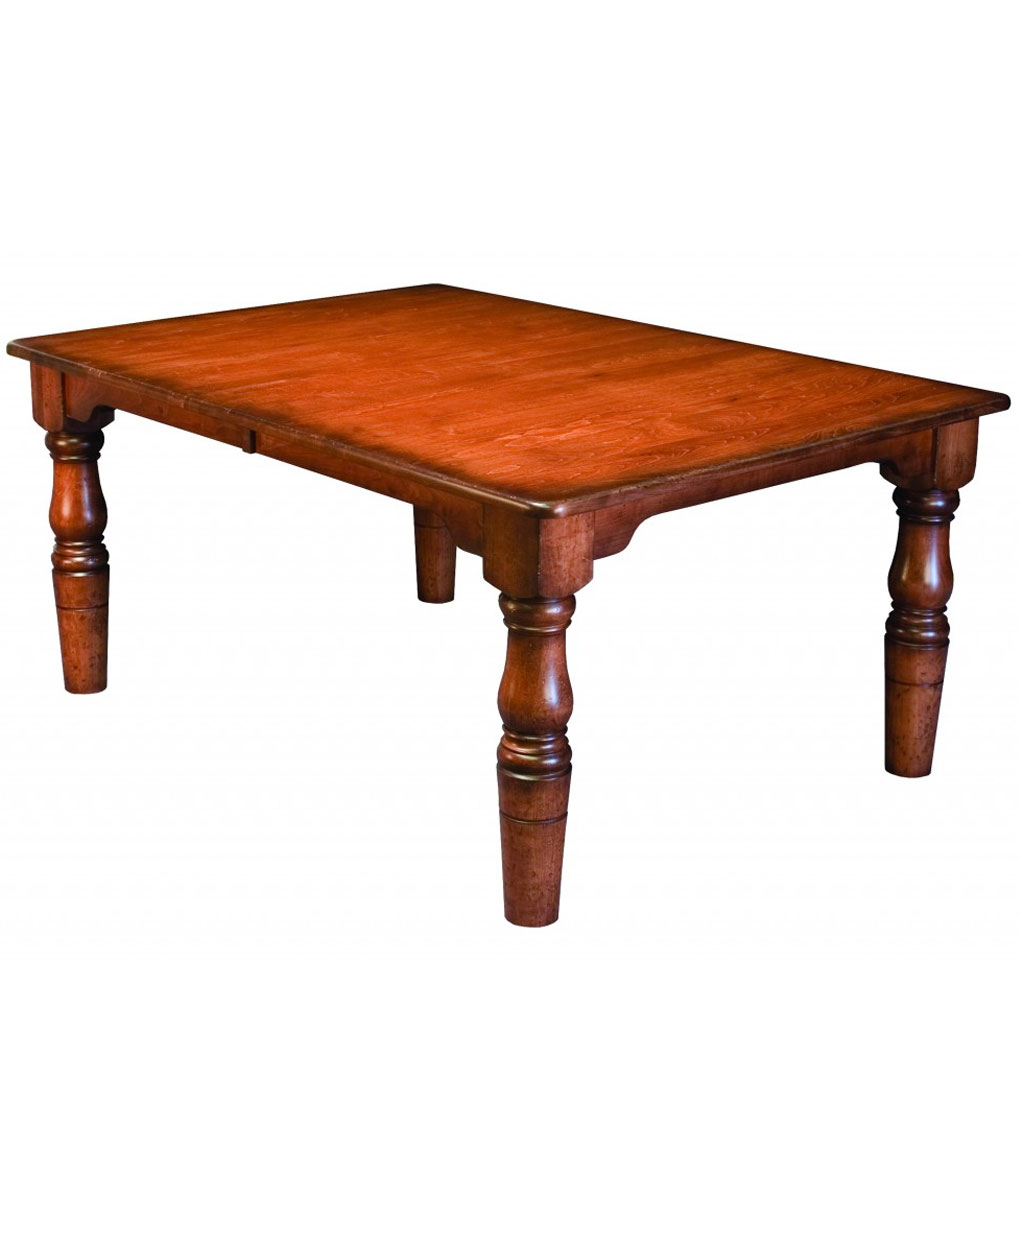 French farm house dining table amish direct furniture Farm dining table